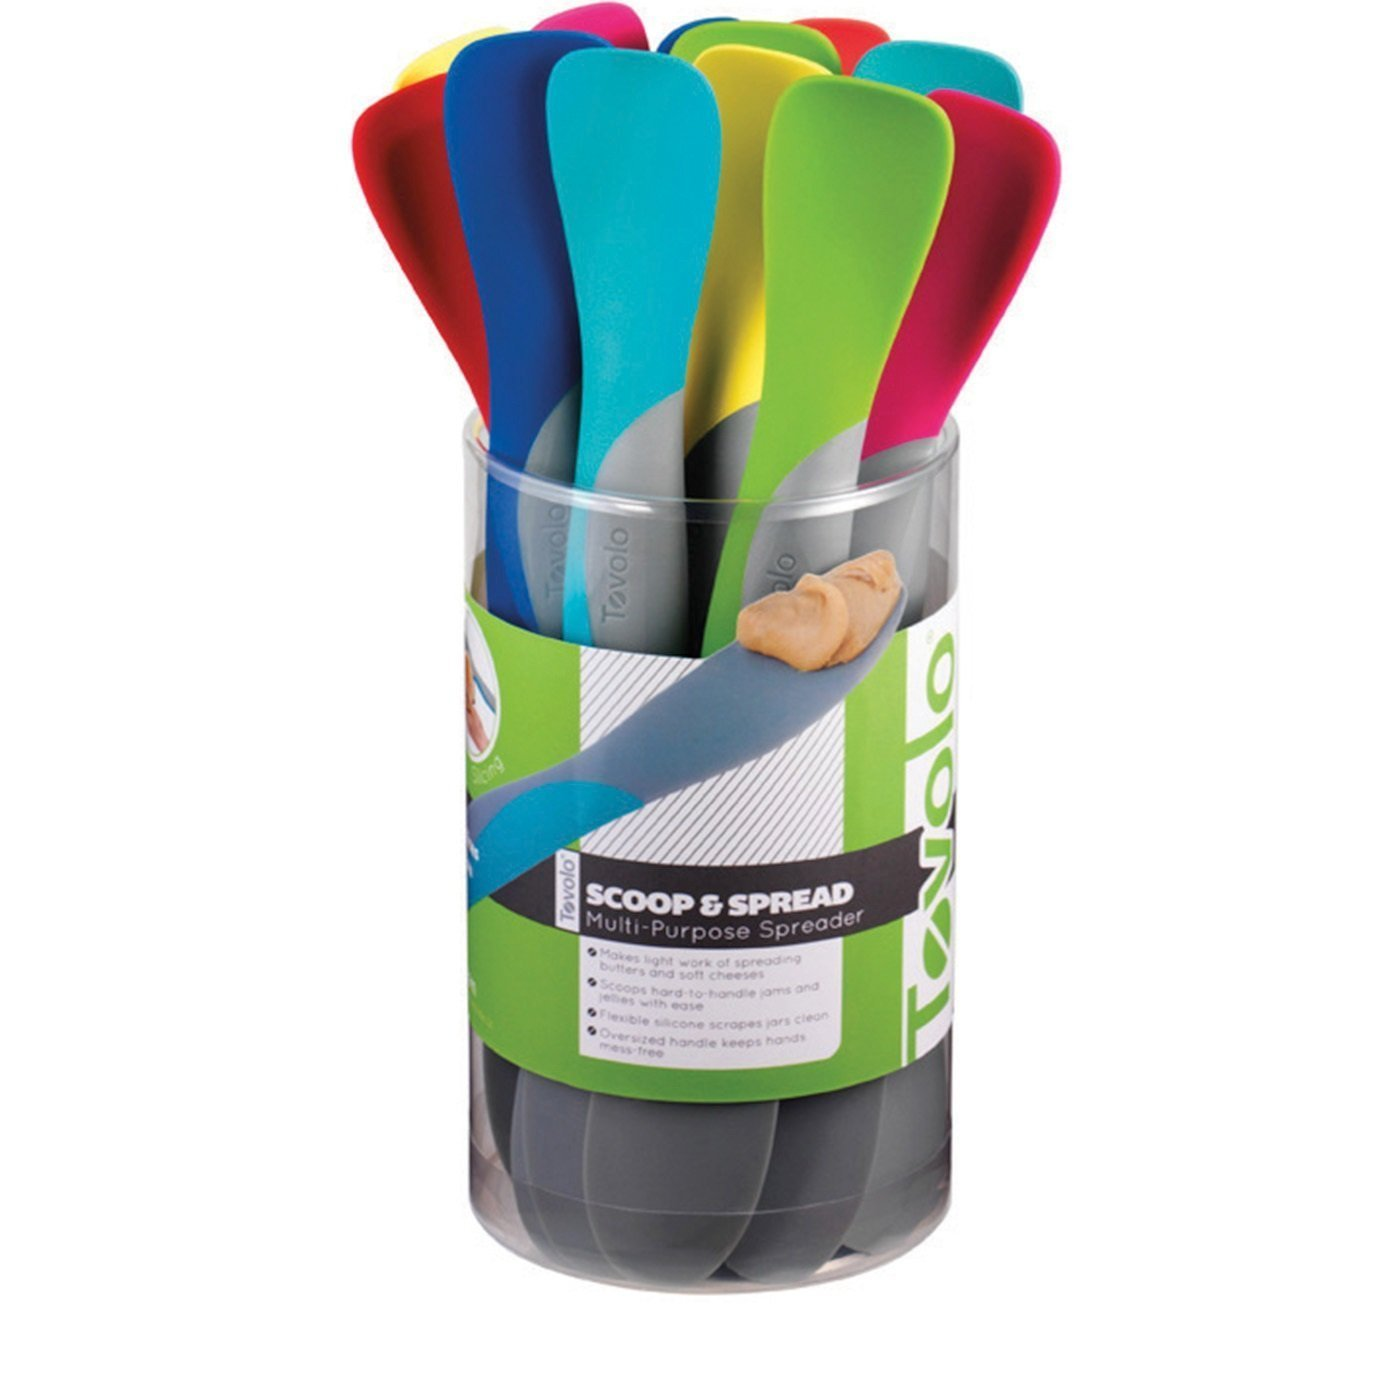 Tovolo Mini Scoop & Spread Spreader Spatula Assorted Colors 1 Piece 4733231